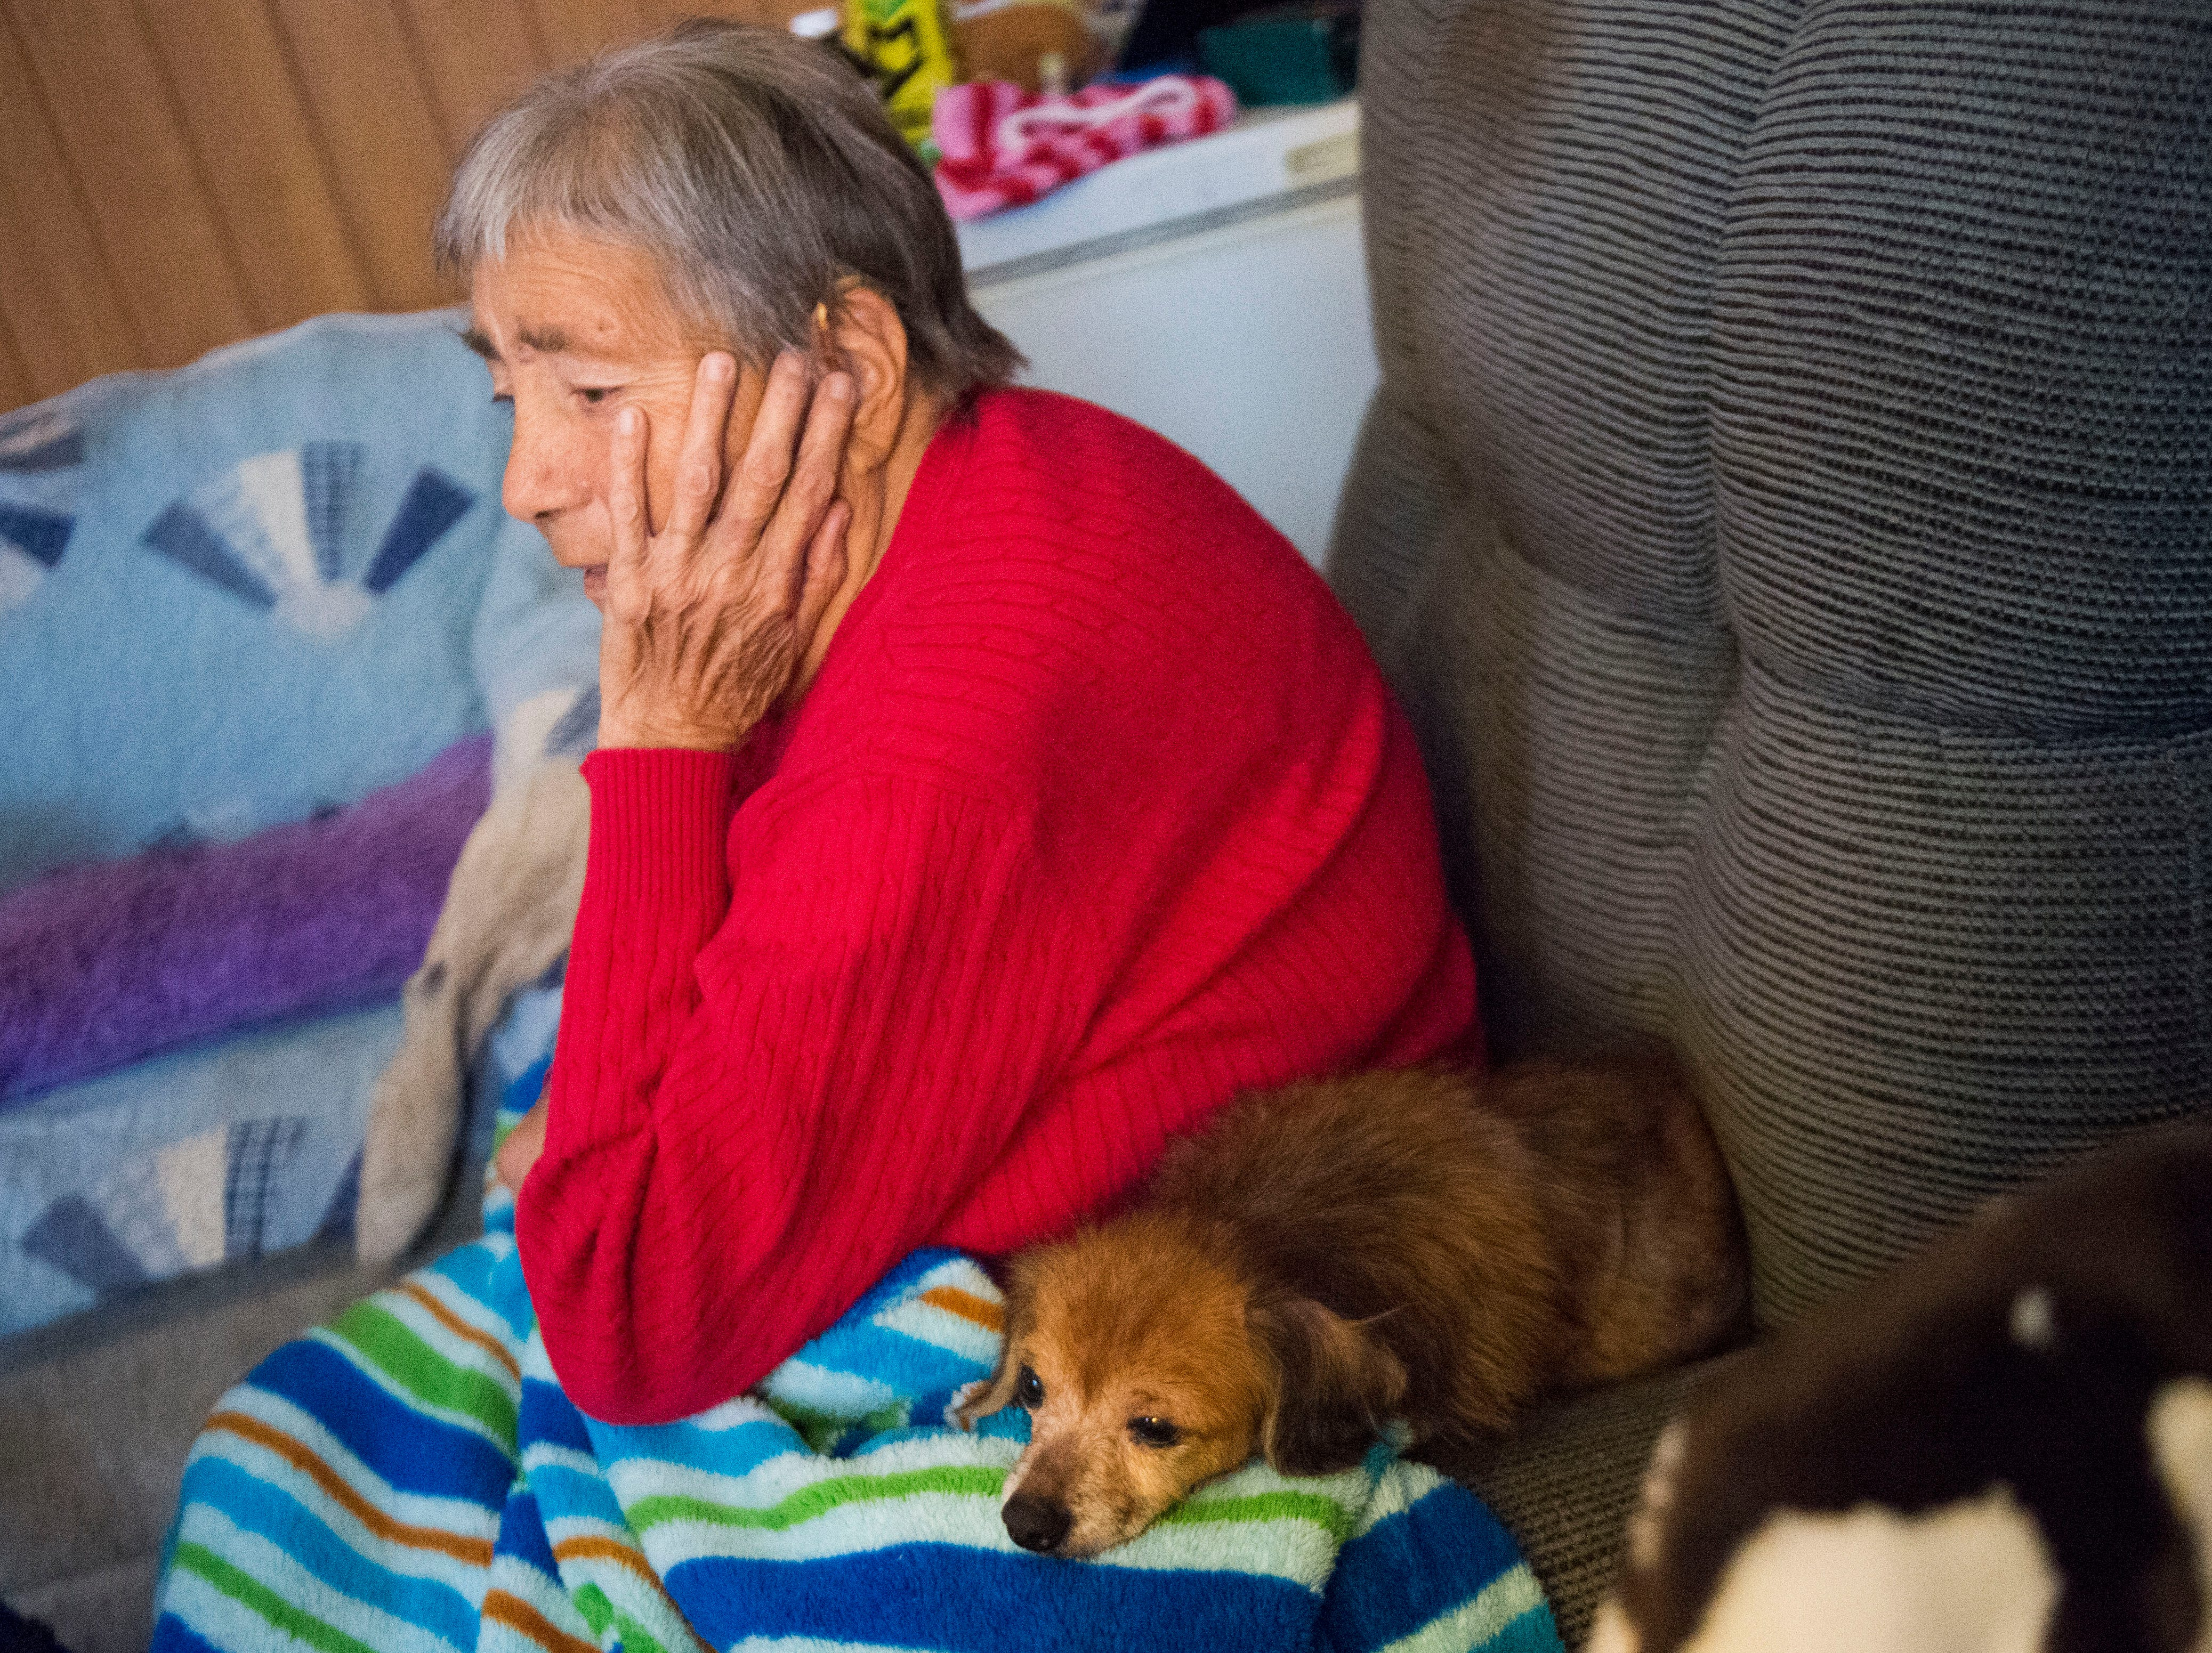 Mary Zick, 81, sits next to her dog Princess in her Knoxville home Tuesday, Dec. 4, 2018. Zick receives dialysis 3 times per week, and the Milk Fund has provided her with Ensure the past 4 to 5 months.